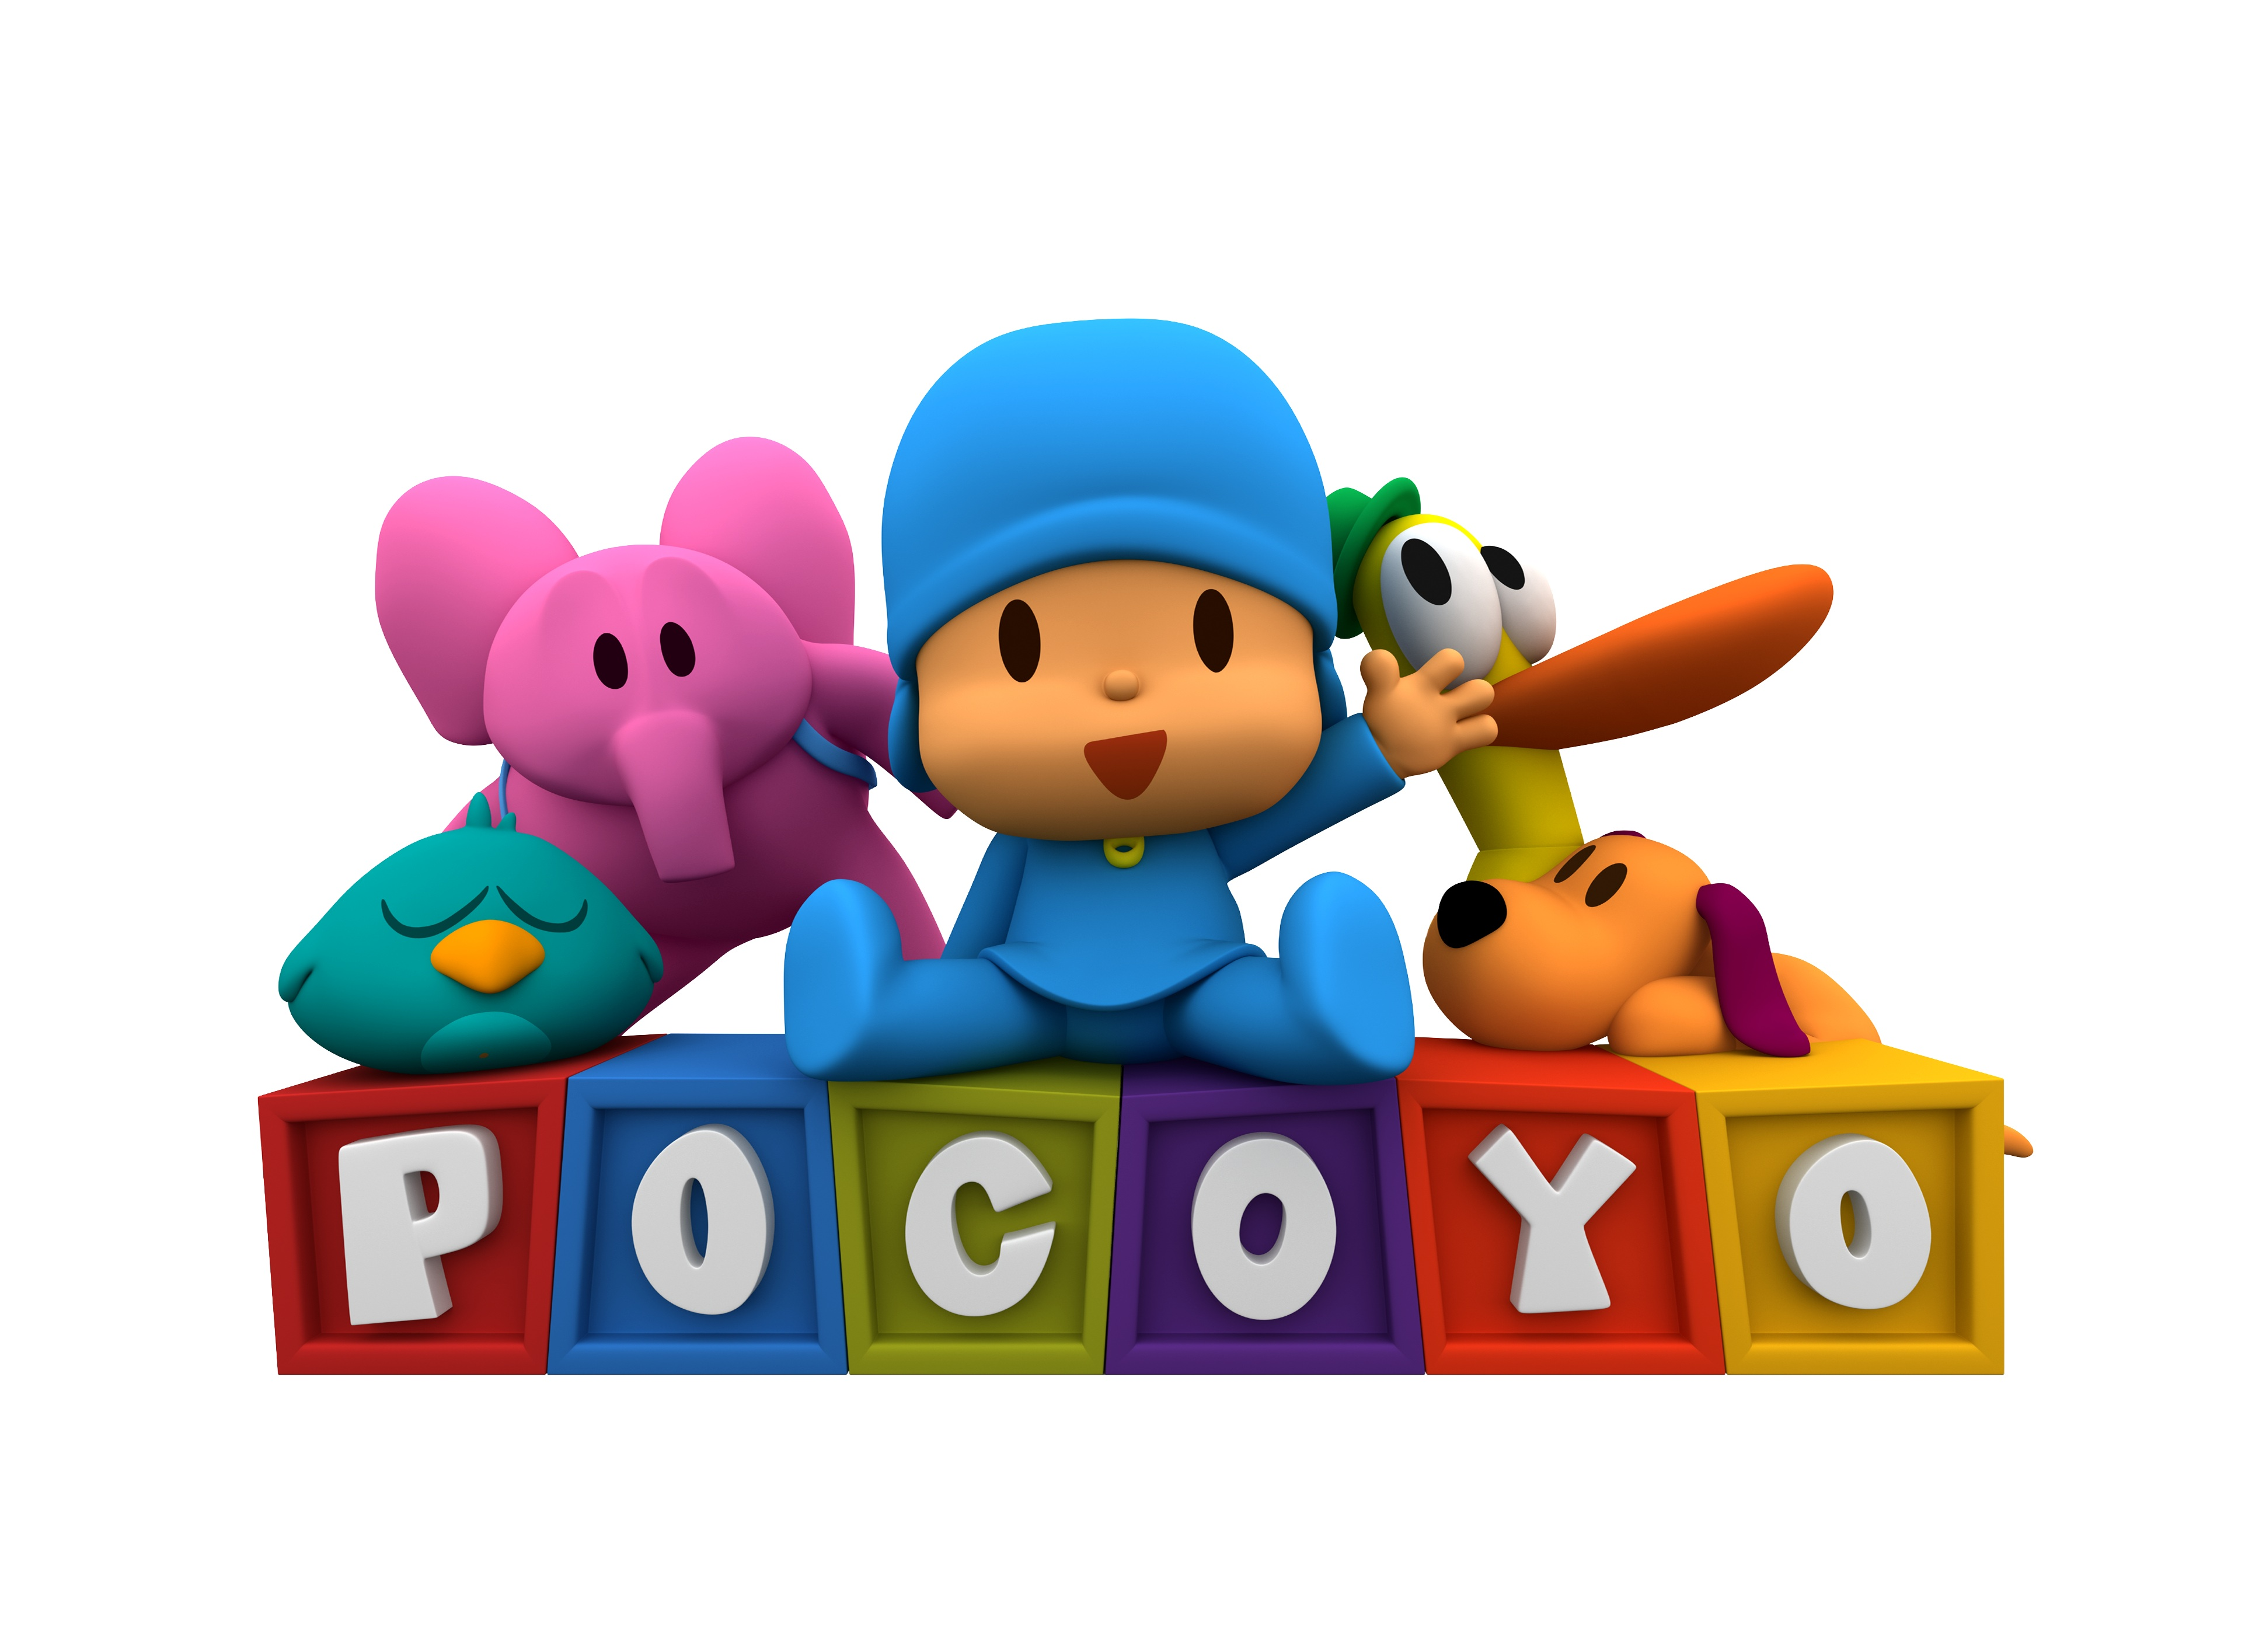 Pocoyo and Friends Coloring Ipad App - No Time Mommy